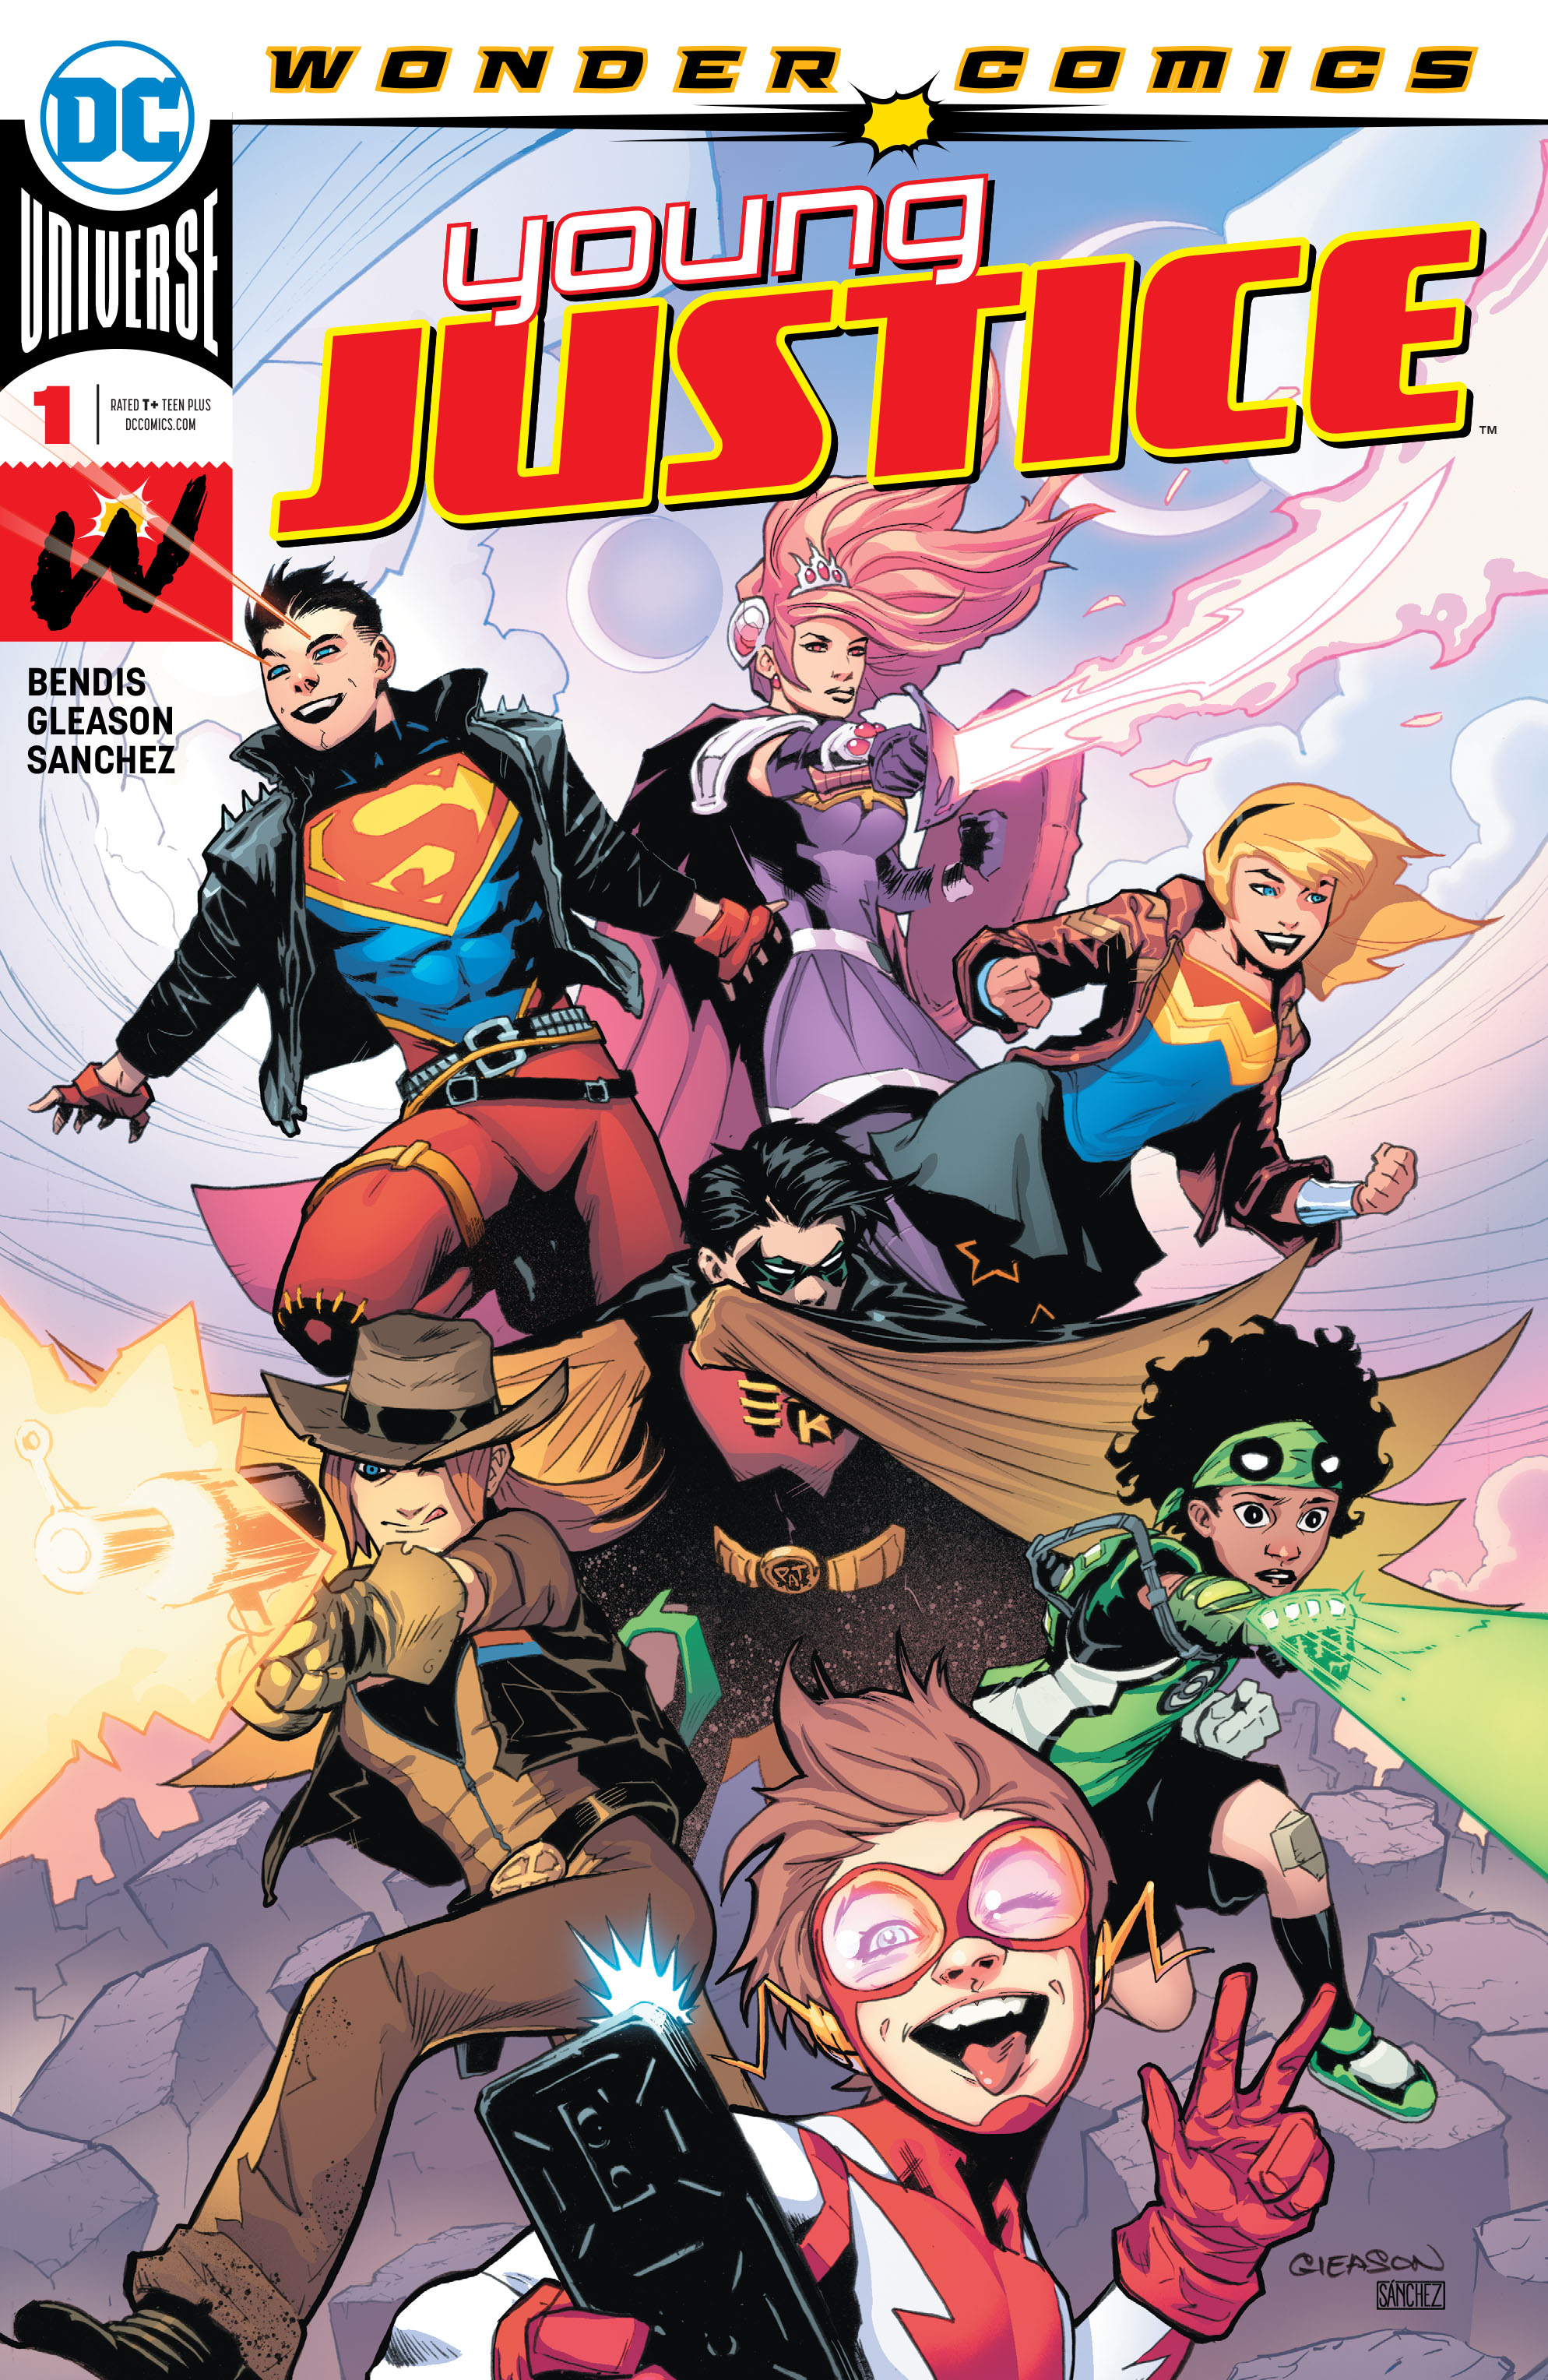 Young Justice #1 Review: Did It Get the 'Bendis' Treatment